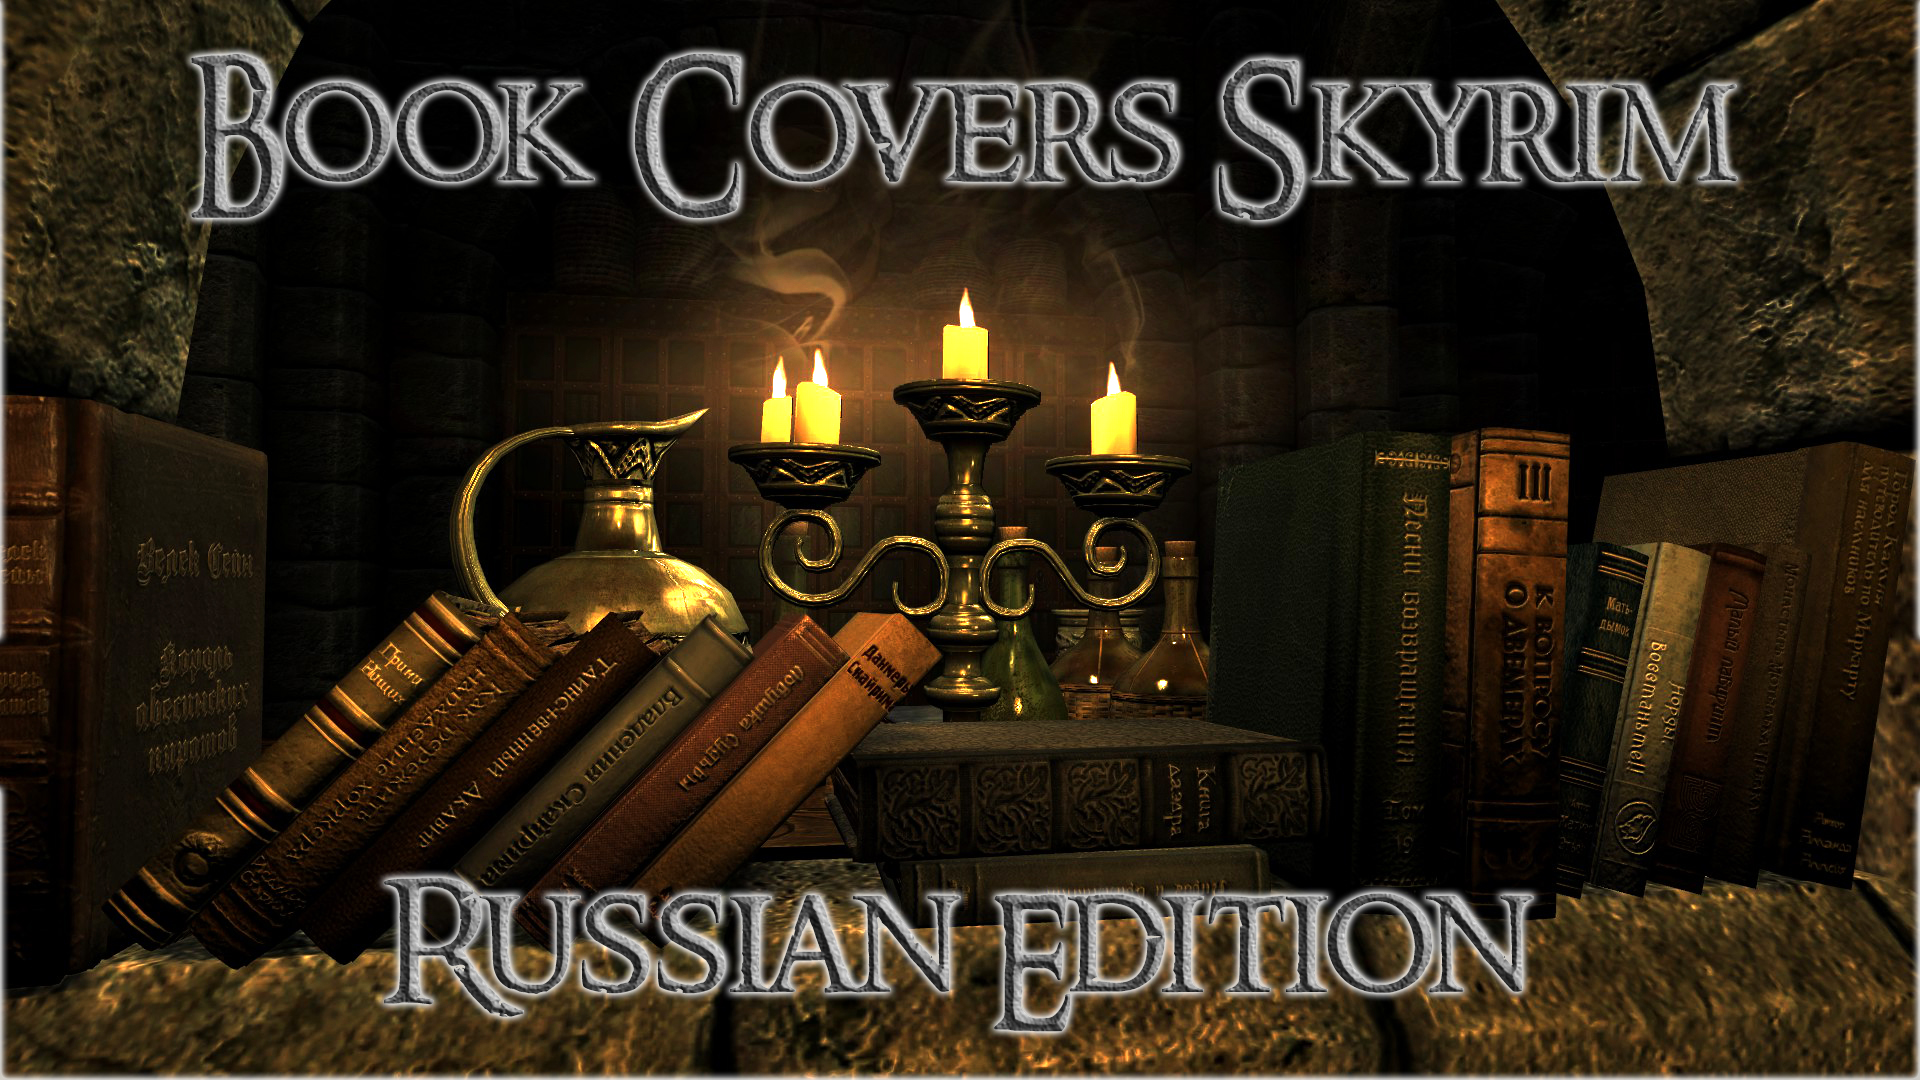 Book Cover Craft Mods : Book covers skyrim russian edition wip at nexus